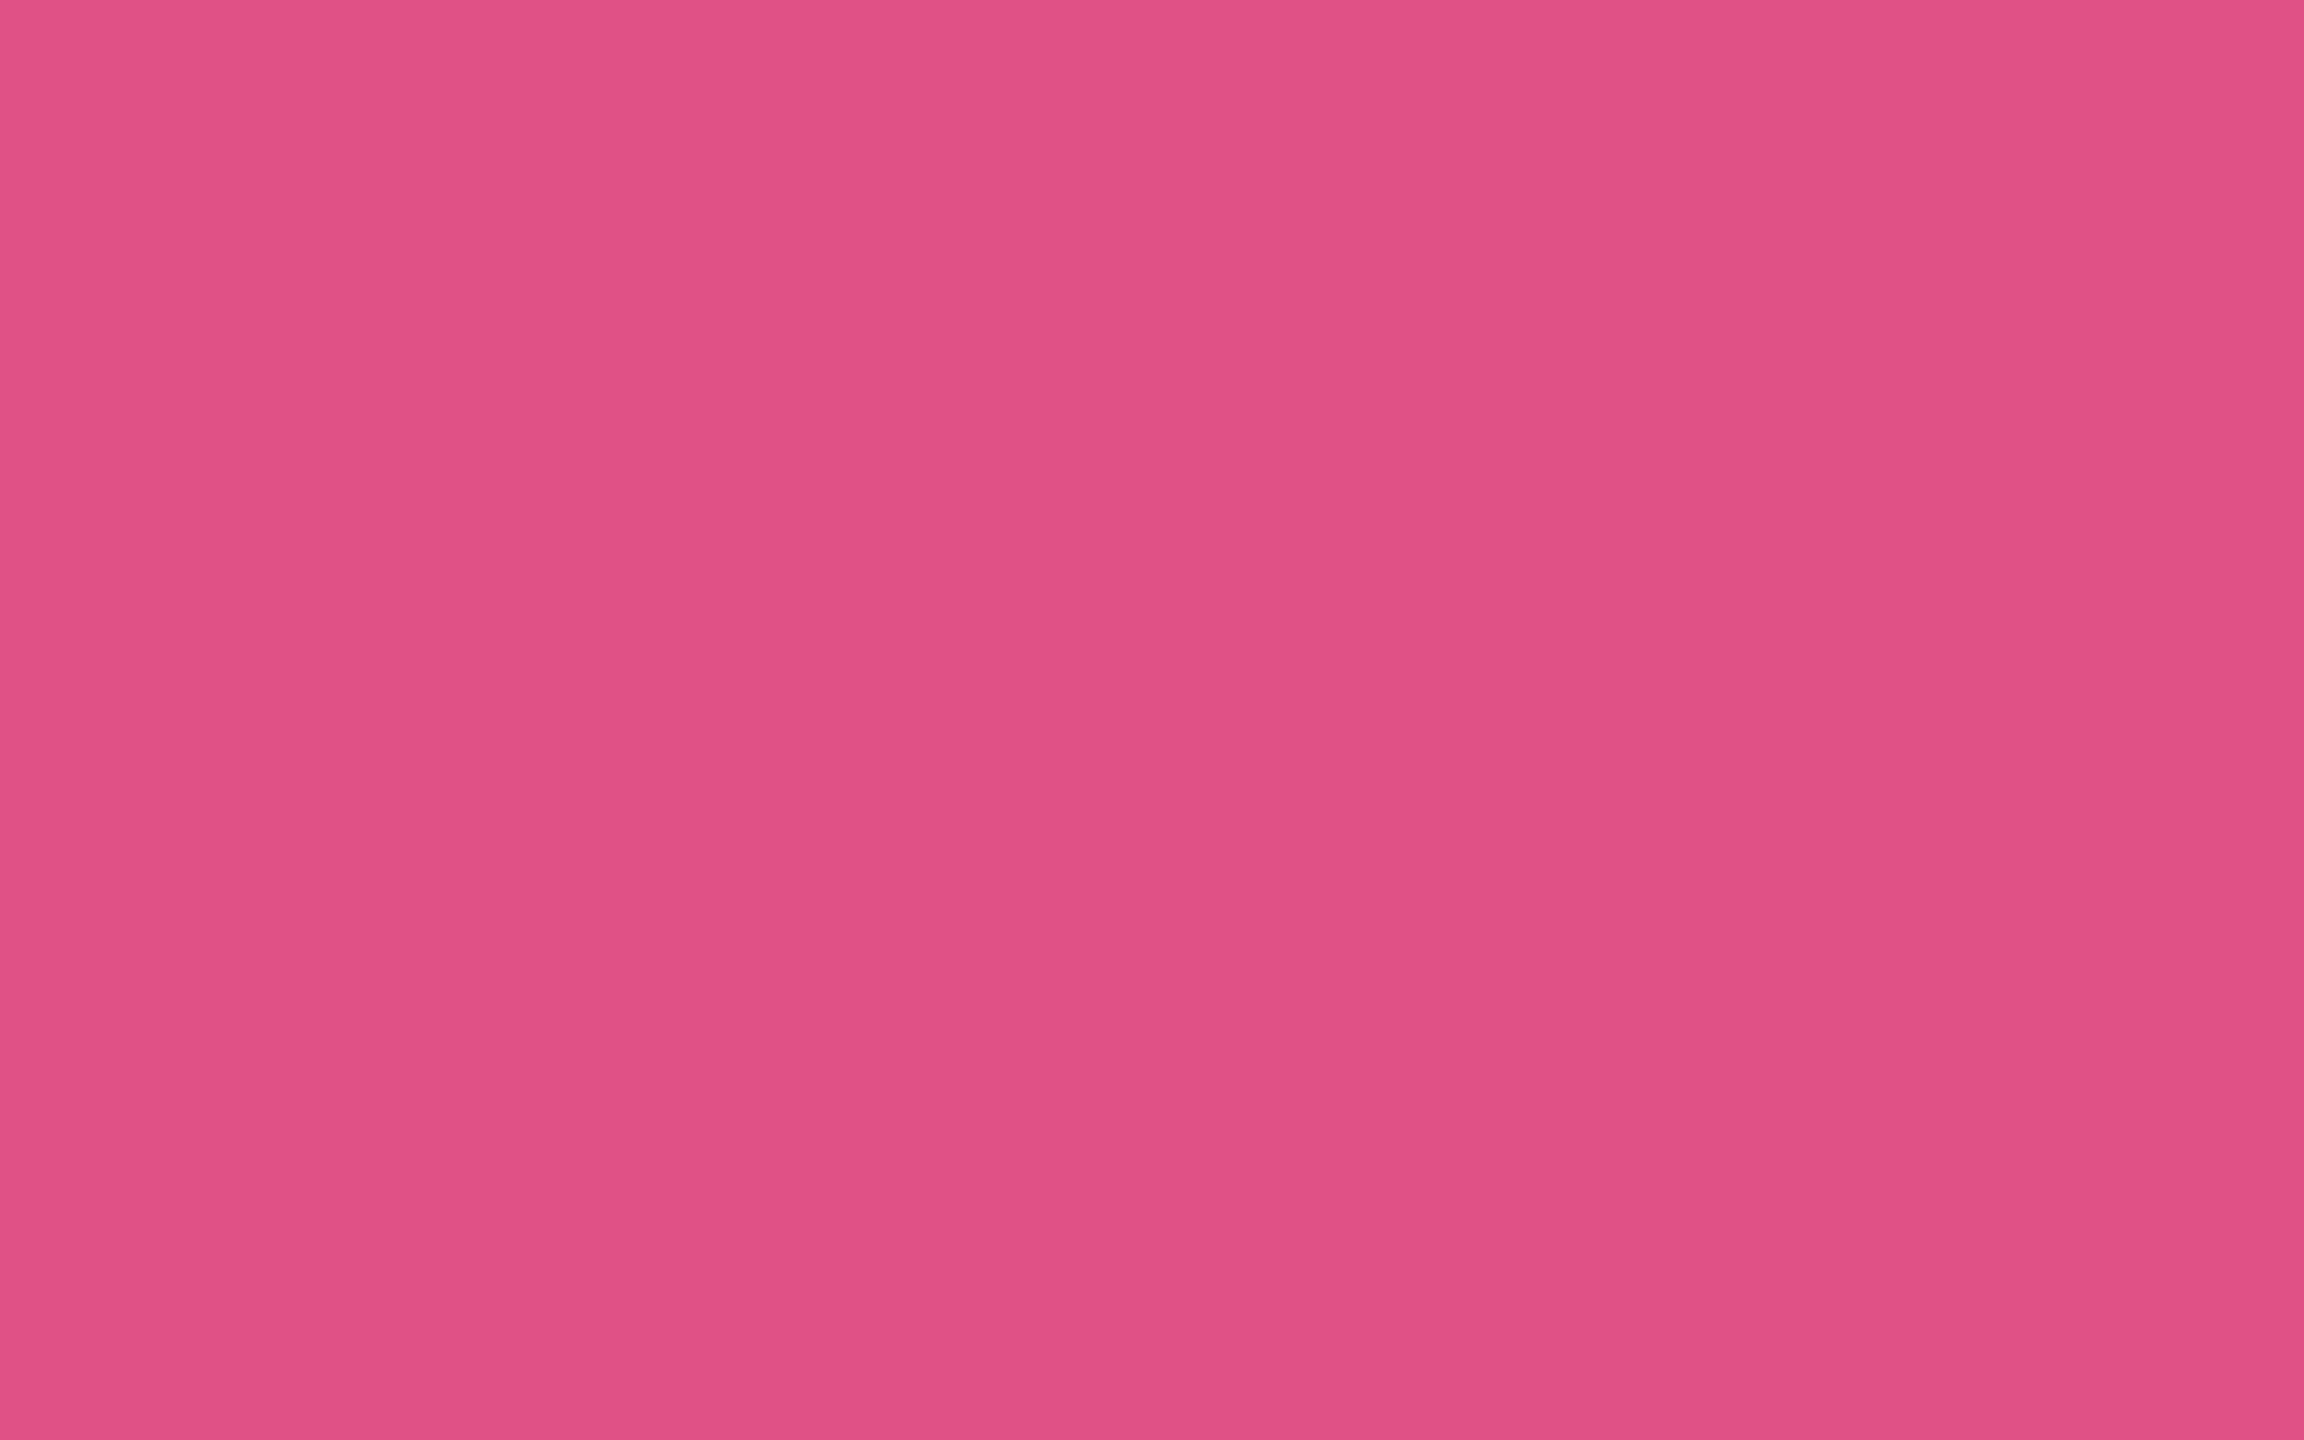 2304x1440 Fandango Pink Solid Color Background